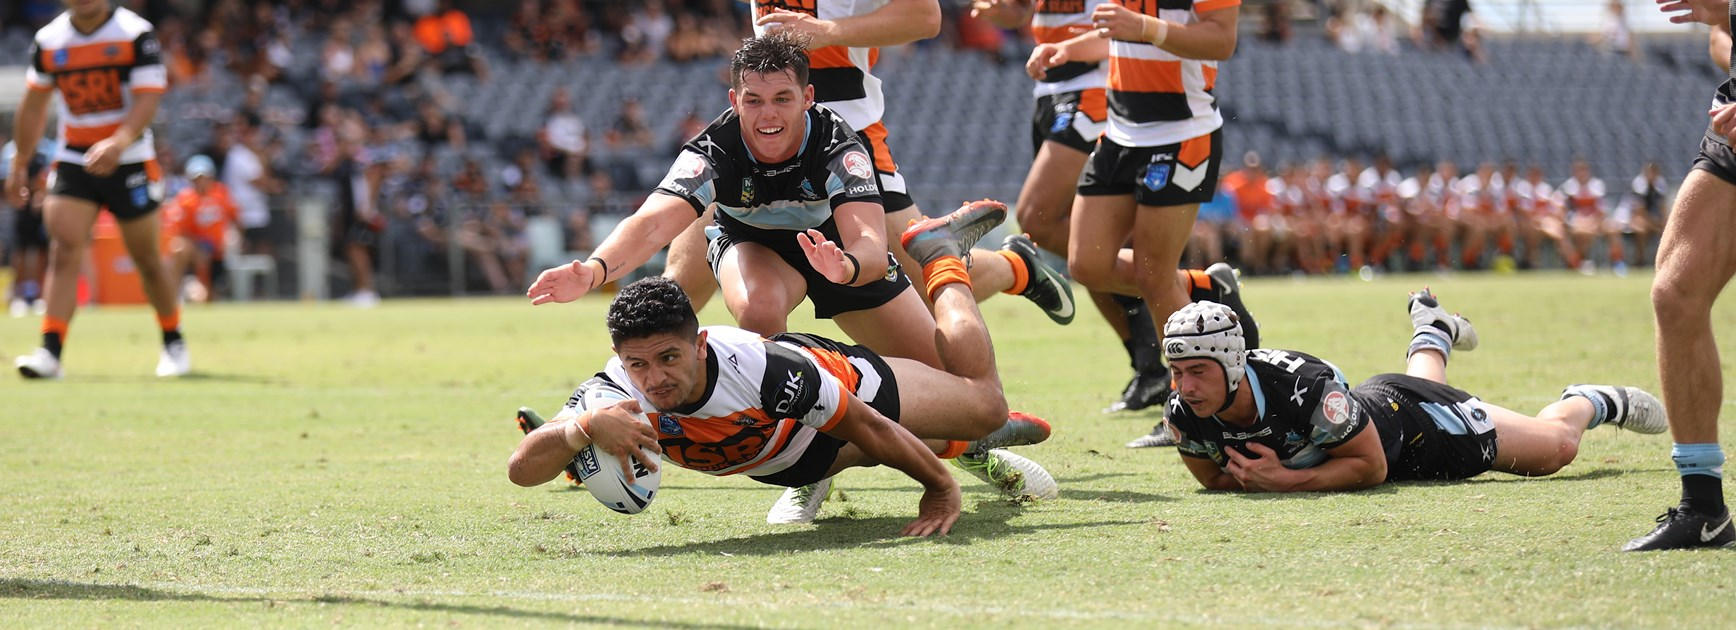 Wests Tigers Jersey Flegg secure first win of season